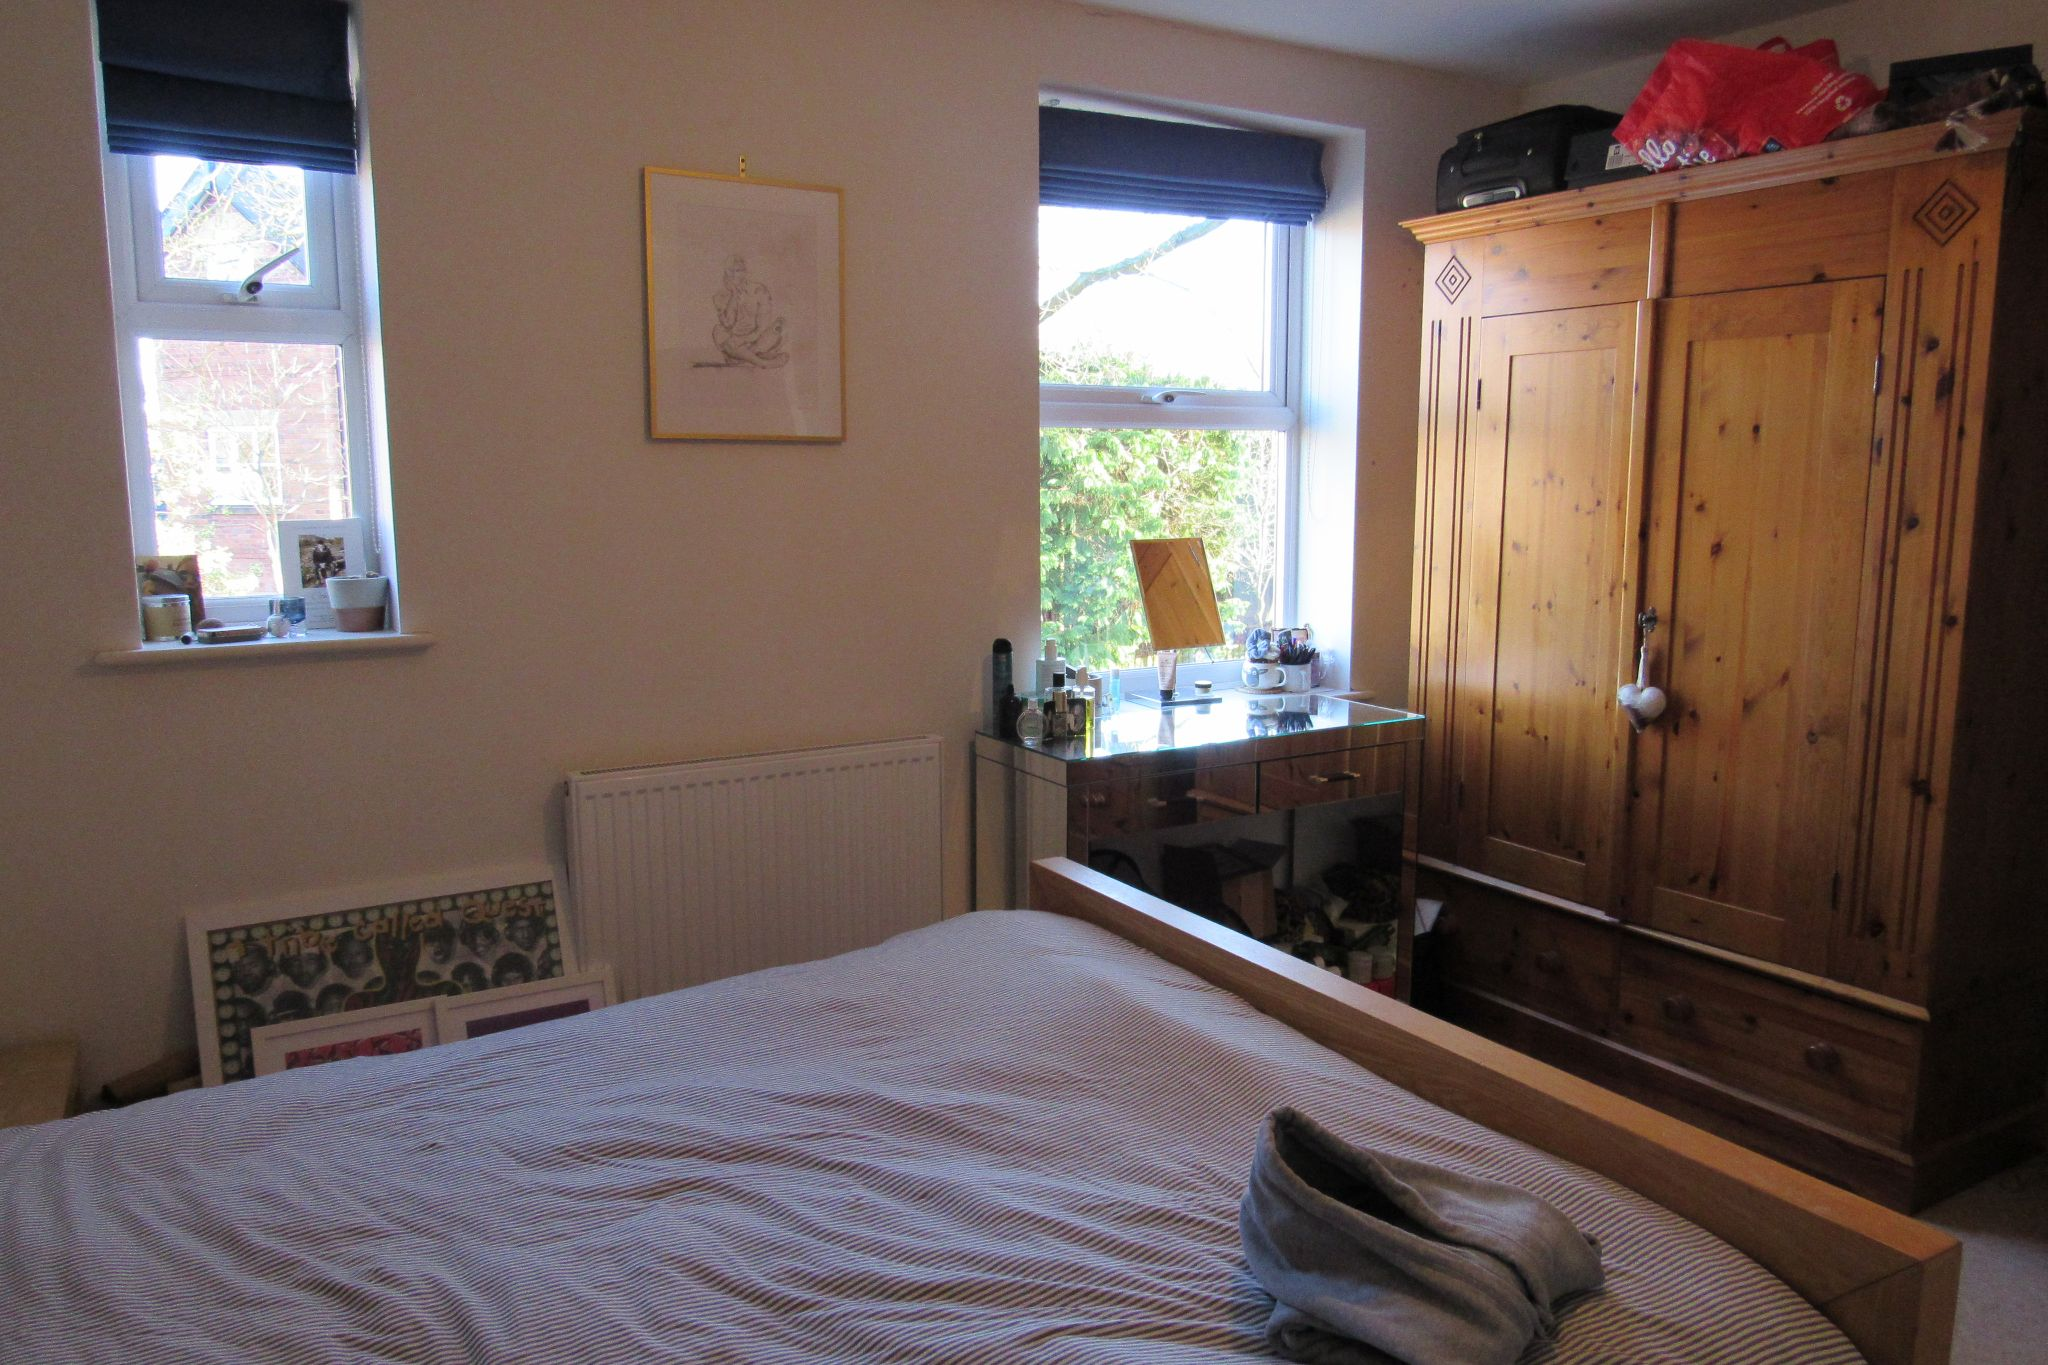 3 bedroom apartment flat/apartment SSTC in Sale - Photograph 26.